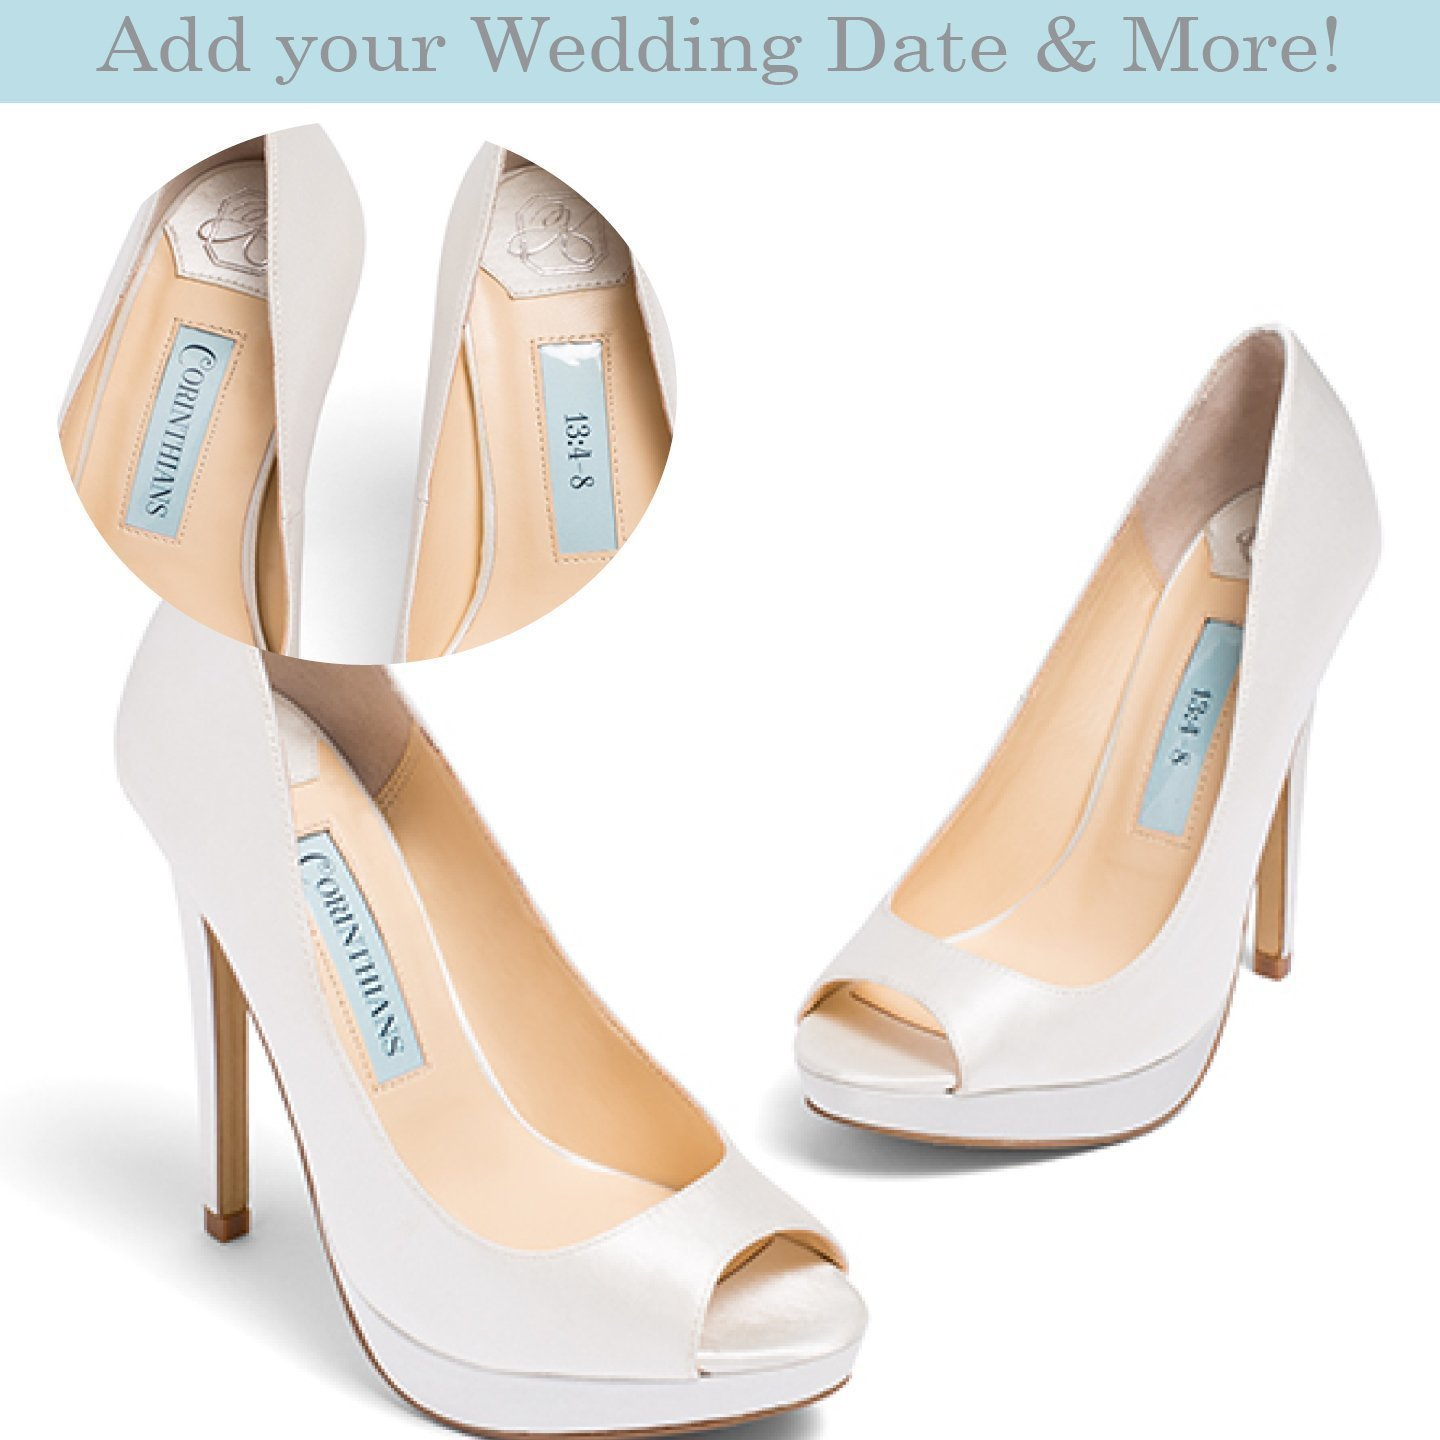 b0048416a20d Amazon.com  Bridal Womens Ivory Satin Peep Toe Wedding Bridal Shoes -  Personalization available patent pending  Handmade